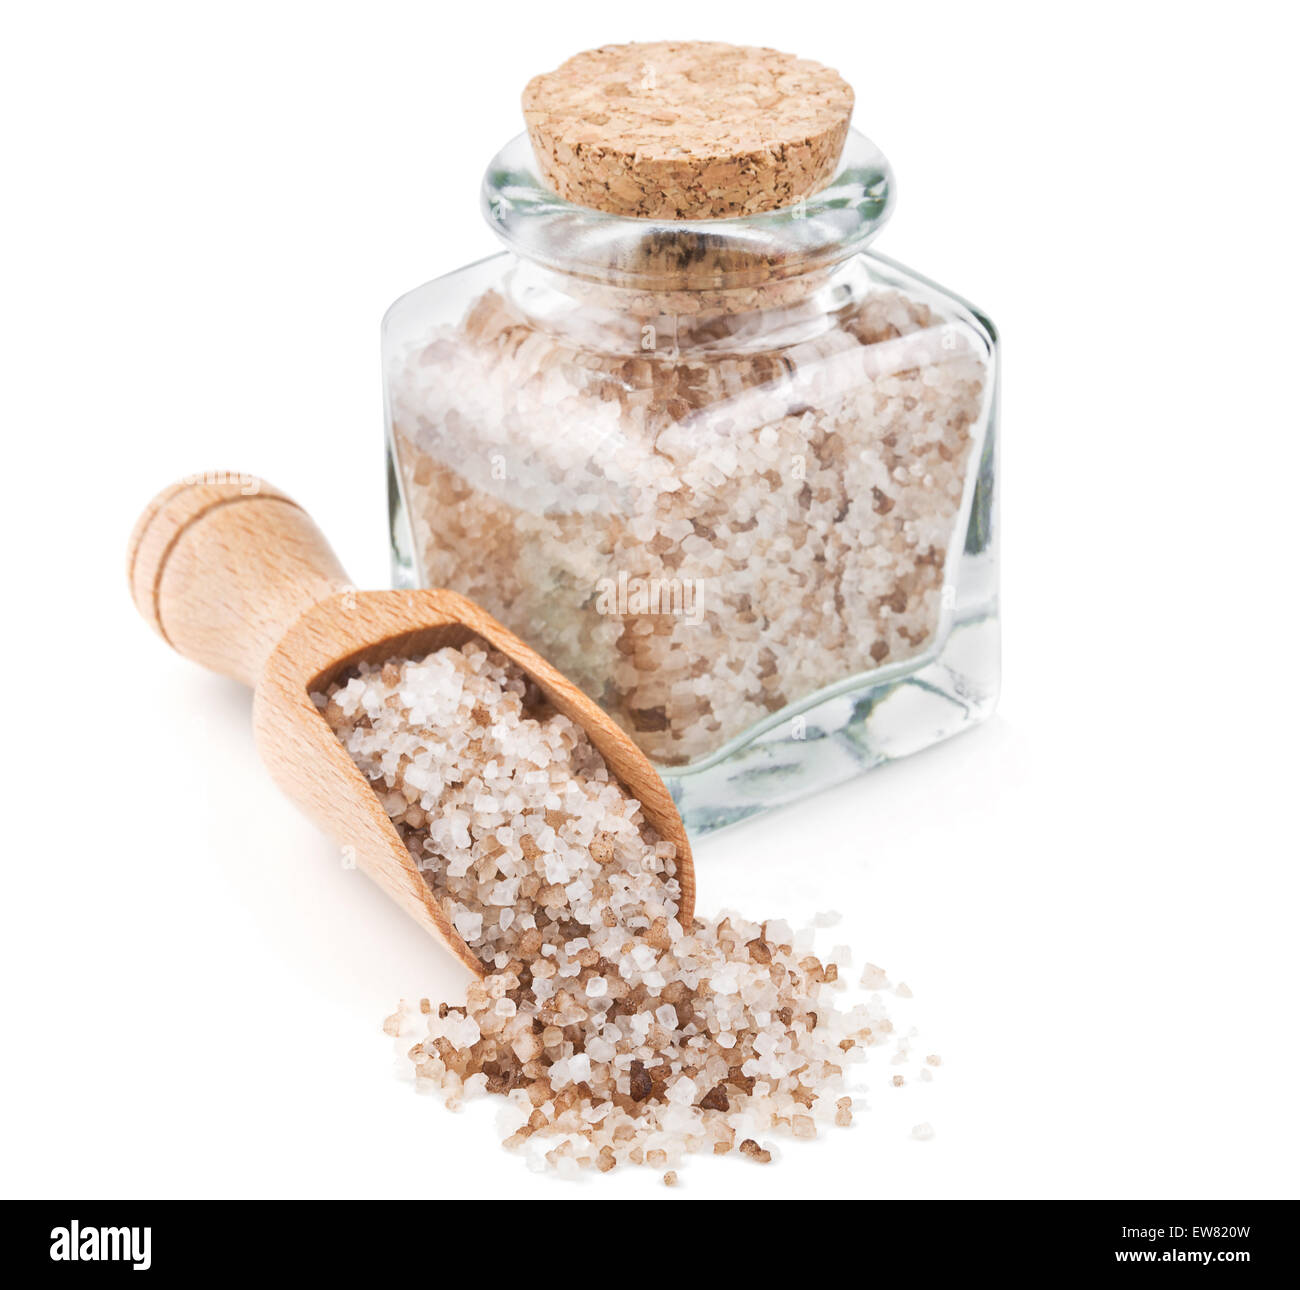 Danish smoked salt in a glass bottle - Stock Image